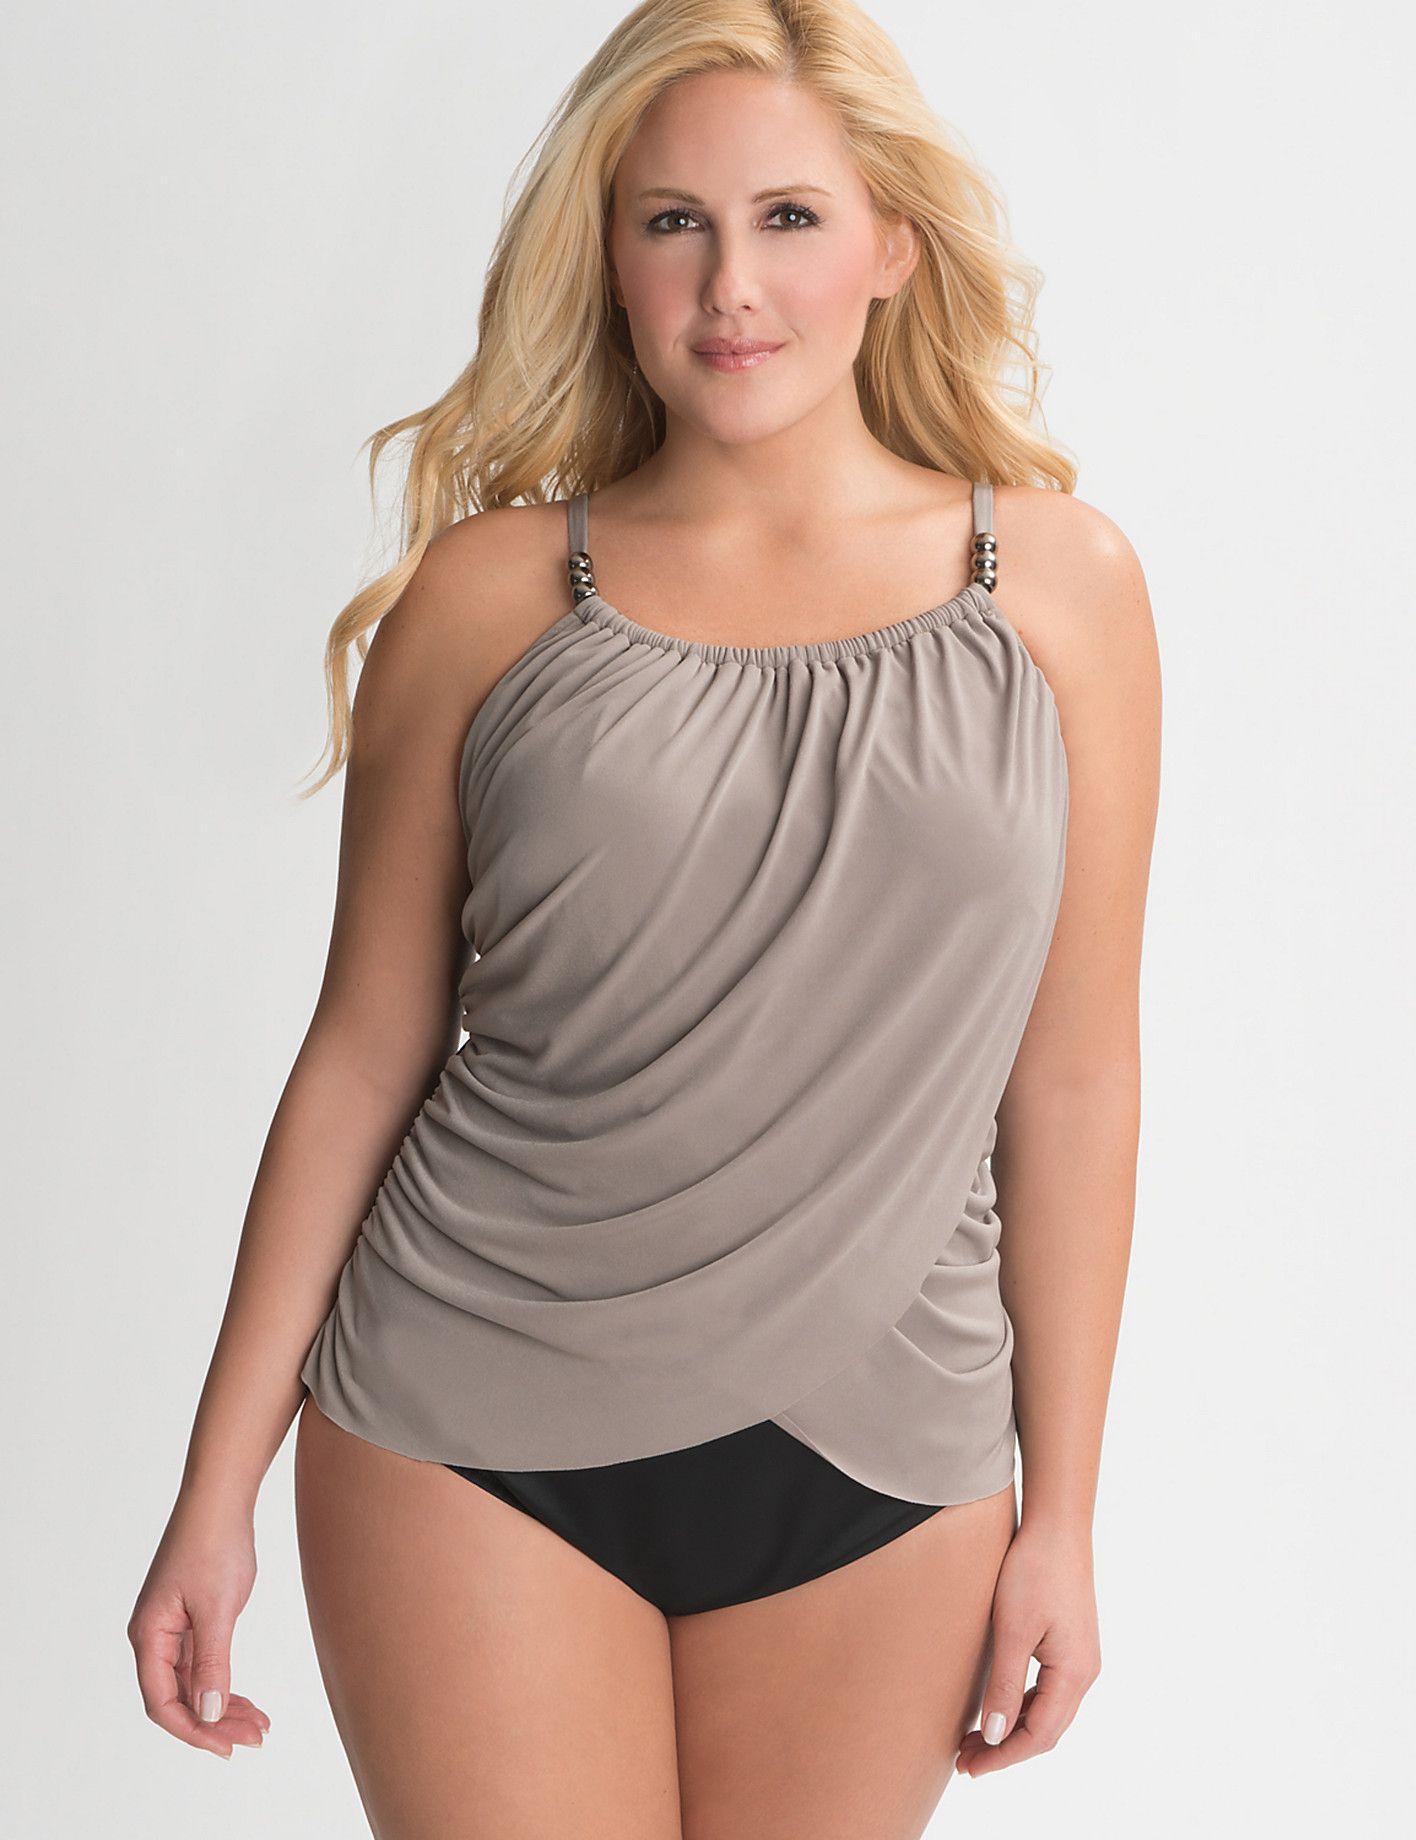 Plus Size Beaded Maillot by Miraclesuit from Sonsi | Getaway ...